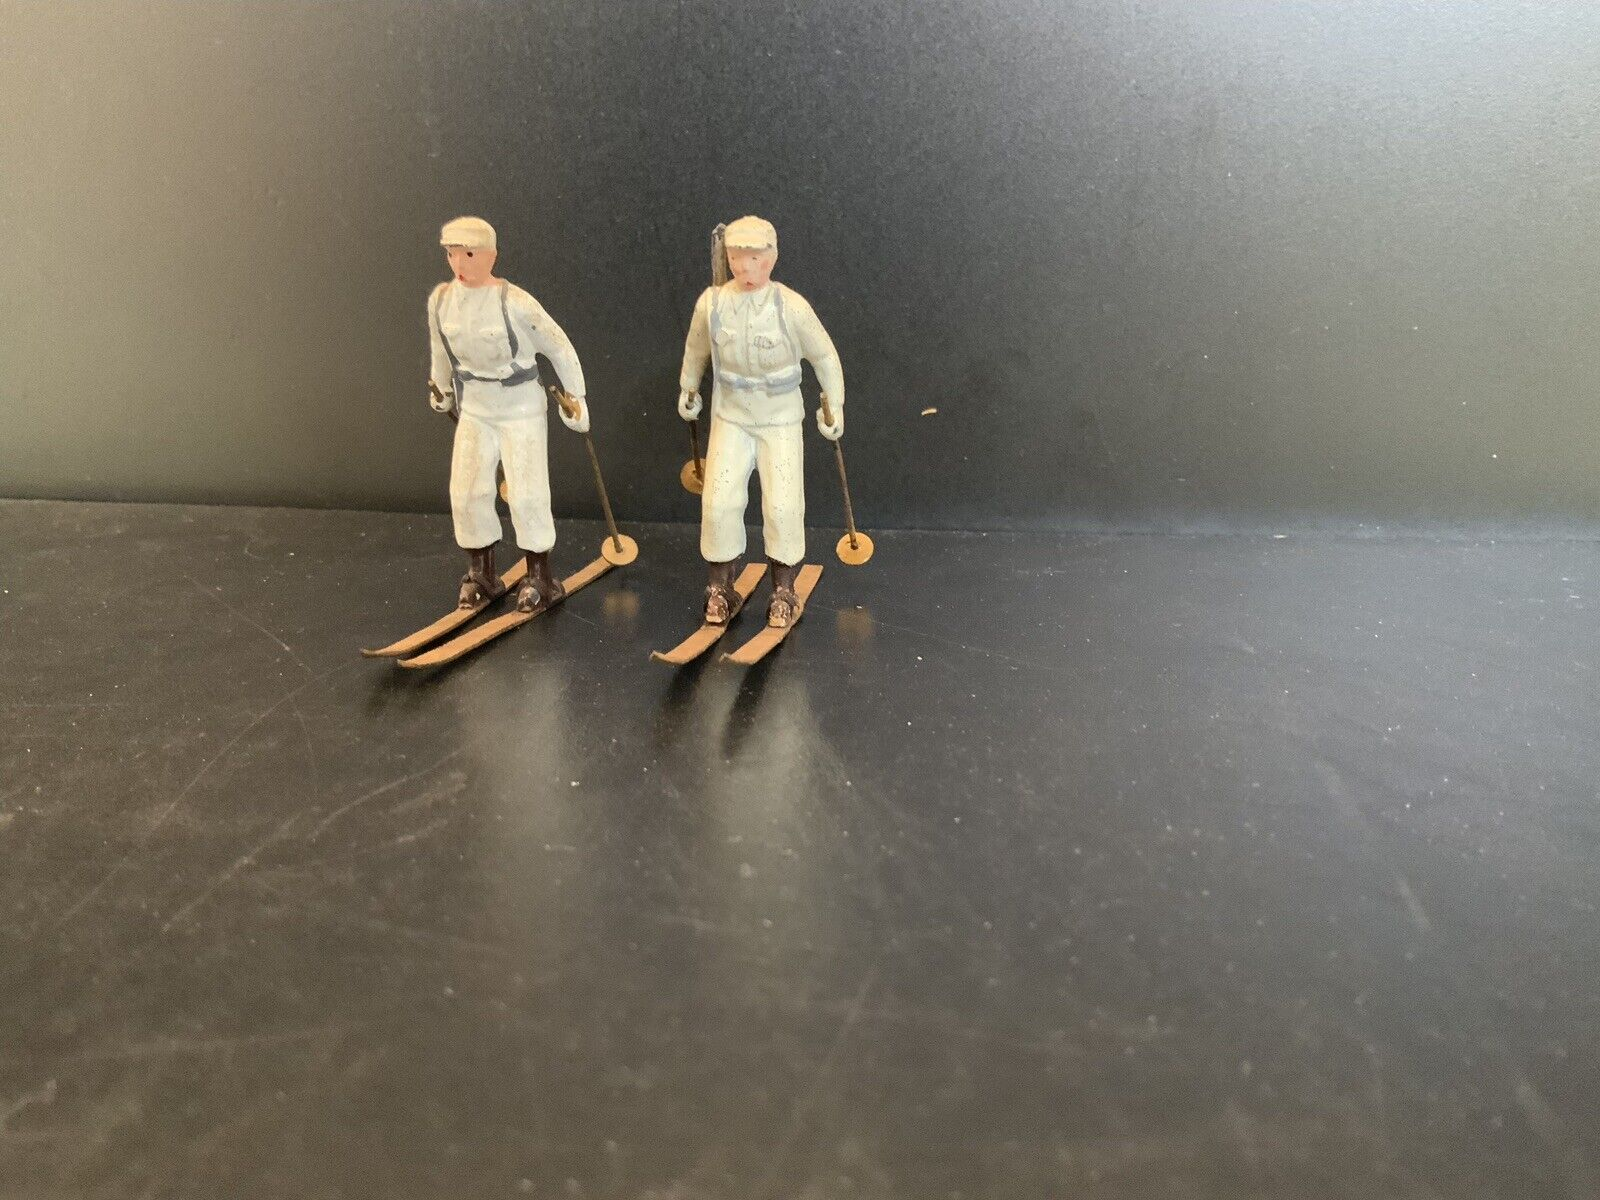 VINTAGE BRITAINS 2 SKI TROOPERS from set 2037 Vg Condition